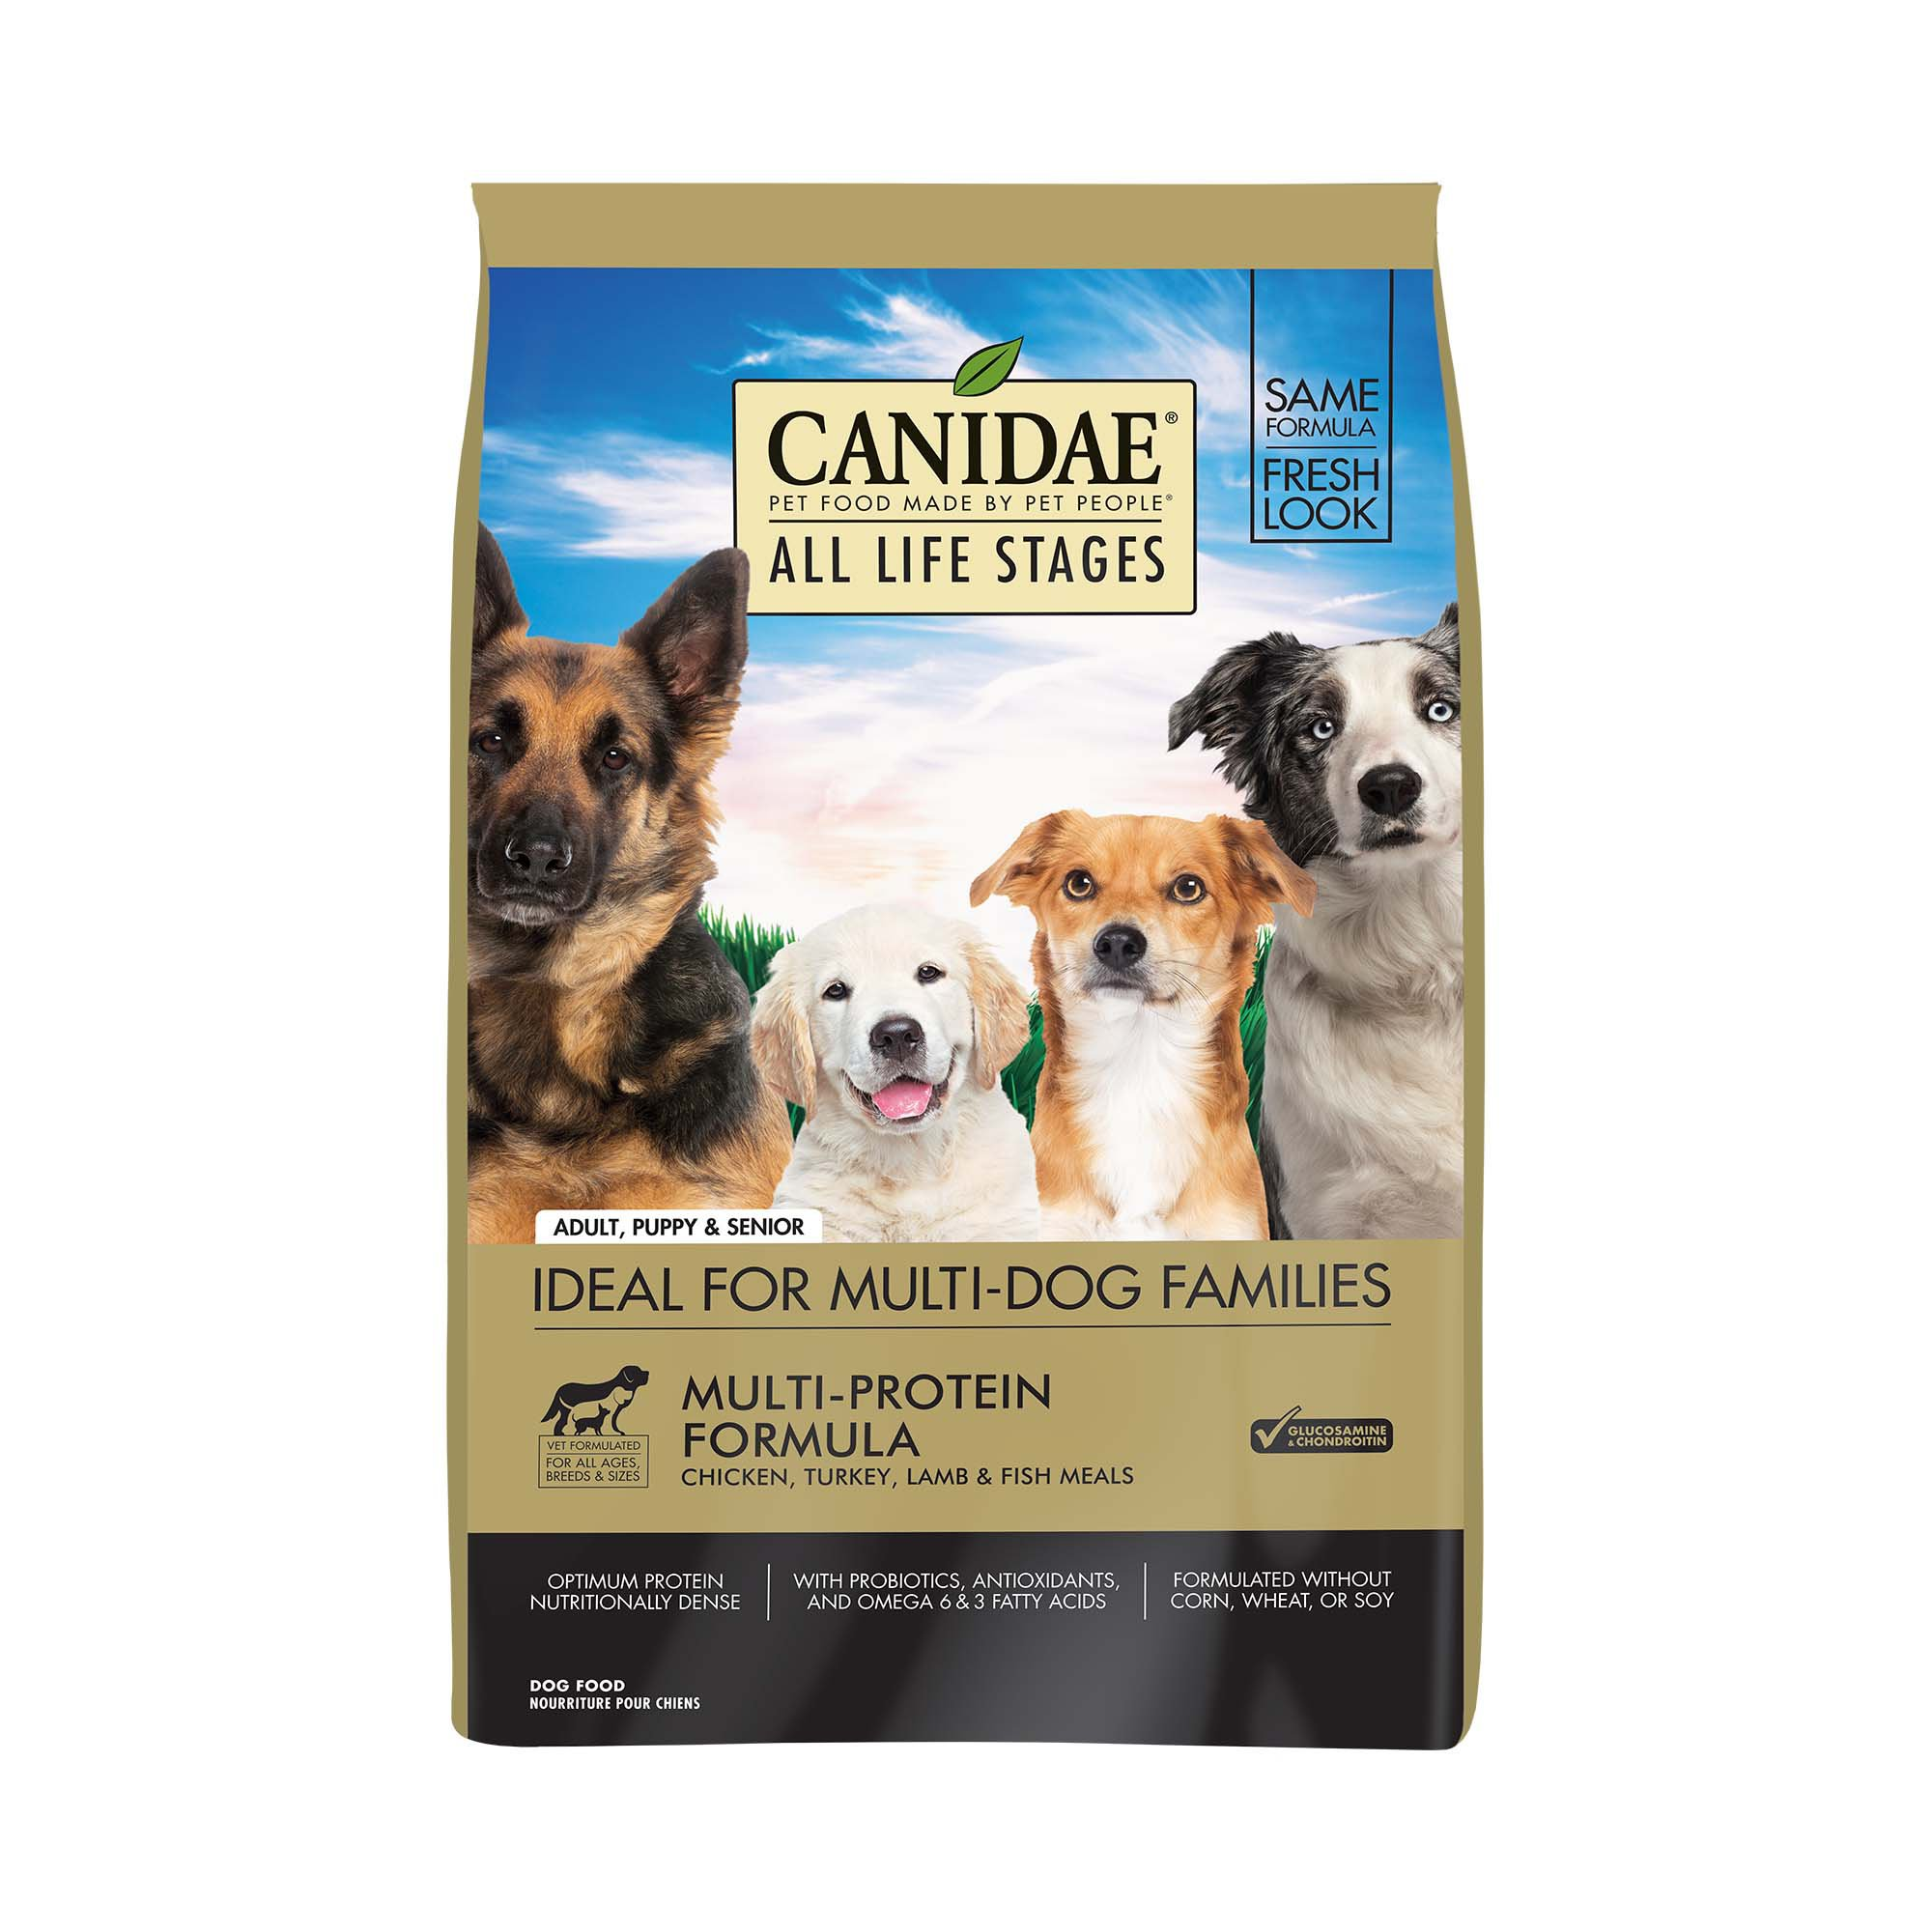 CANIDAE All Life Stages Chicken, Turkey, Lamb & Fish Meals Formula Dry Dog Food, 30 lbs.